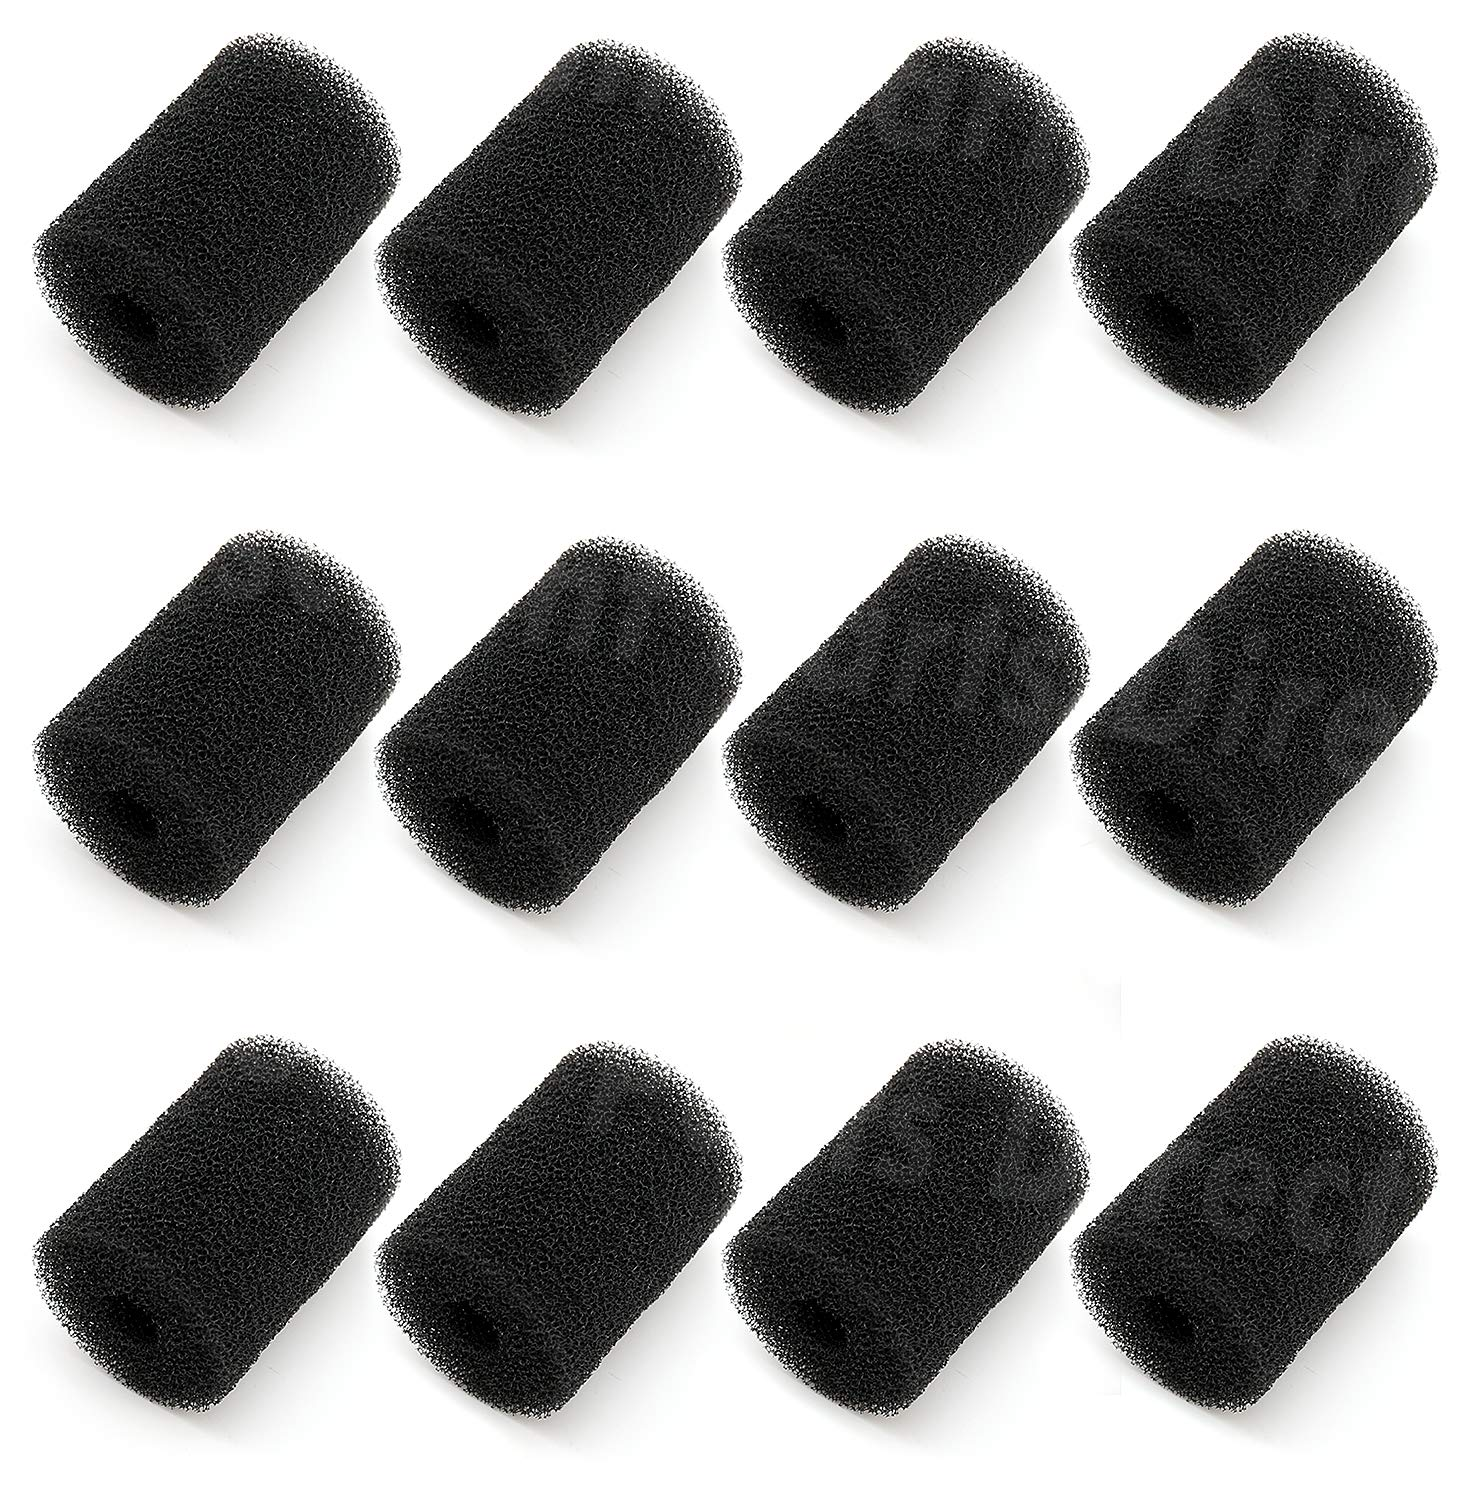 12 Pack MiMoo Sweep Hose Tail Scrubbers Replacement for Polaris Pool Cleaner, Fits Polaris 180 280 360 380, 3900 Sweep Pool Cleaner